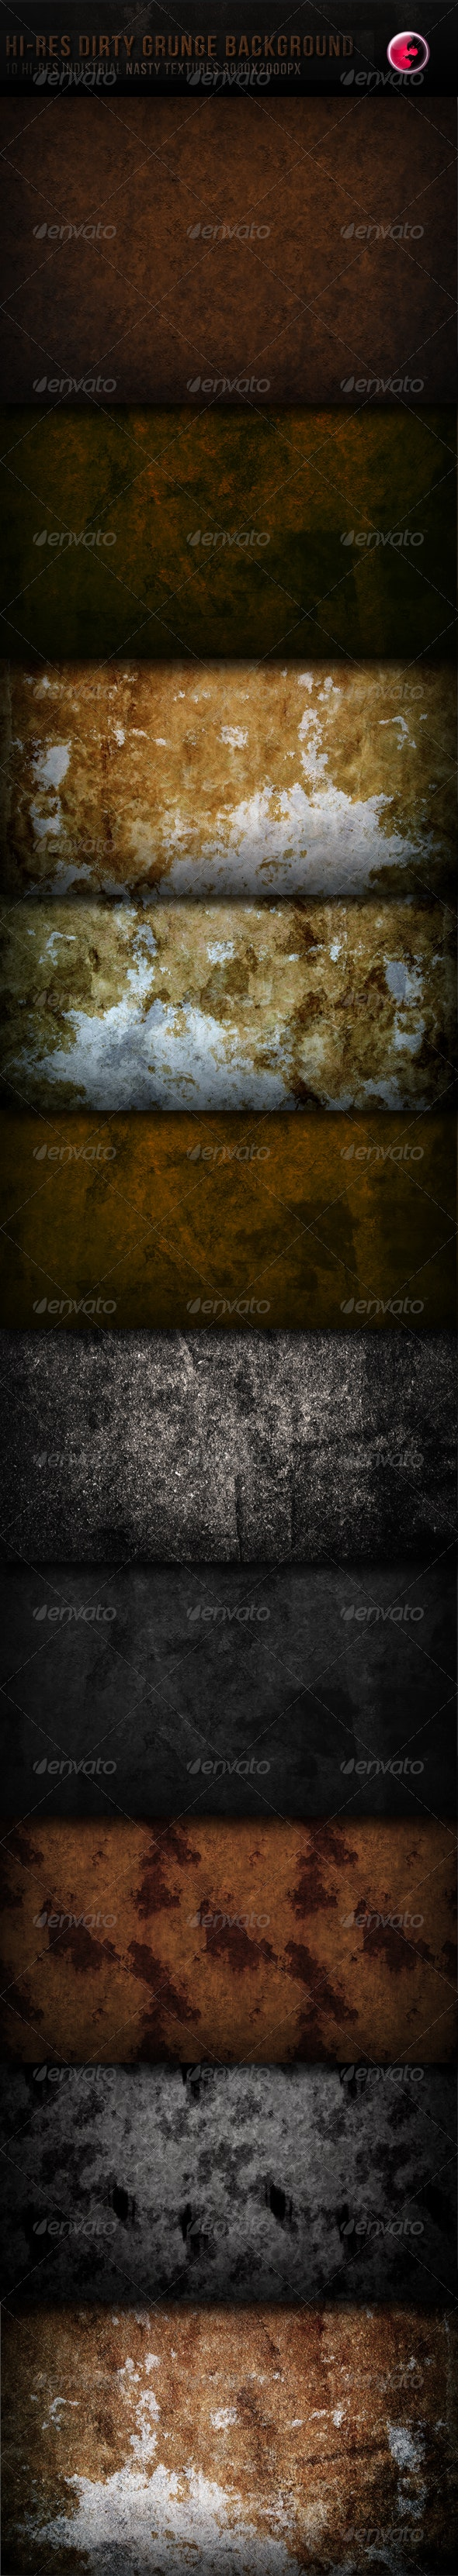 10 Hi-res Dirty Grunge TeXture/Background - Industrial / Grunge Textures